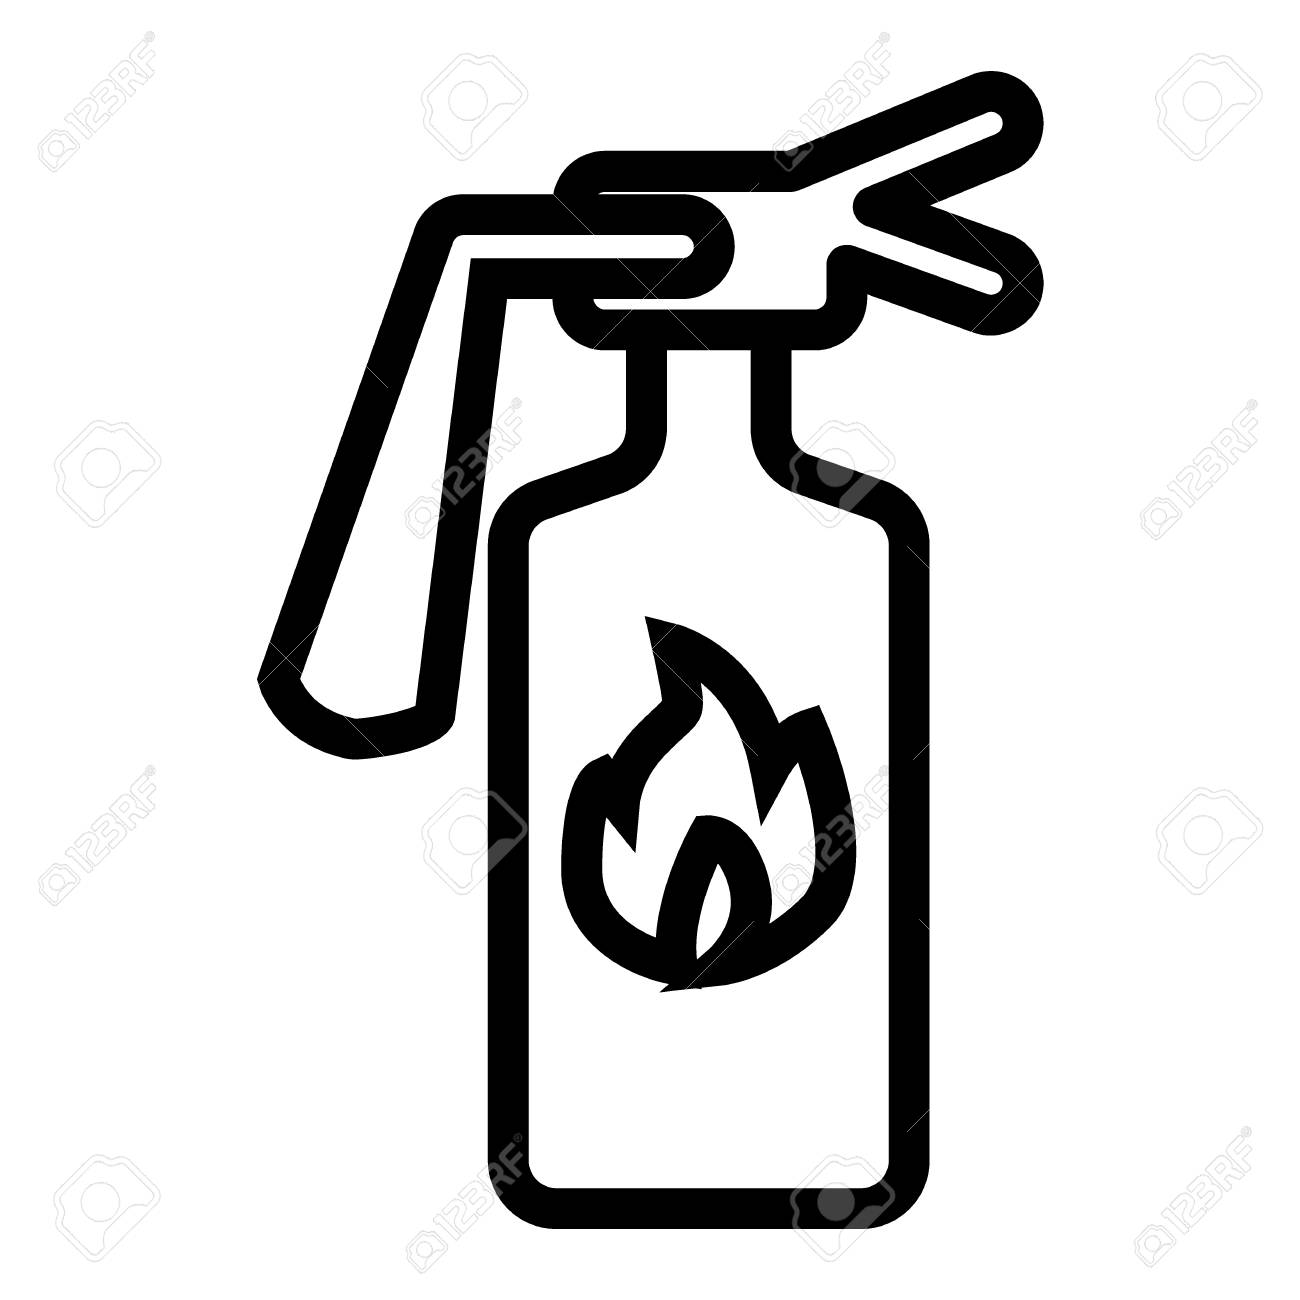 Fire extinguisher line icon  Fire protection vector illustration